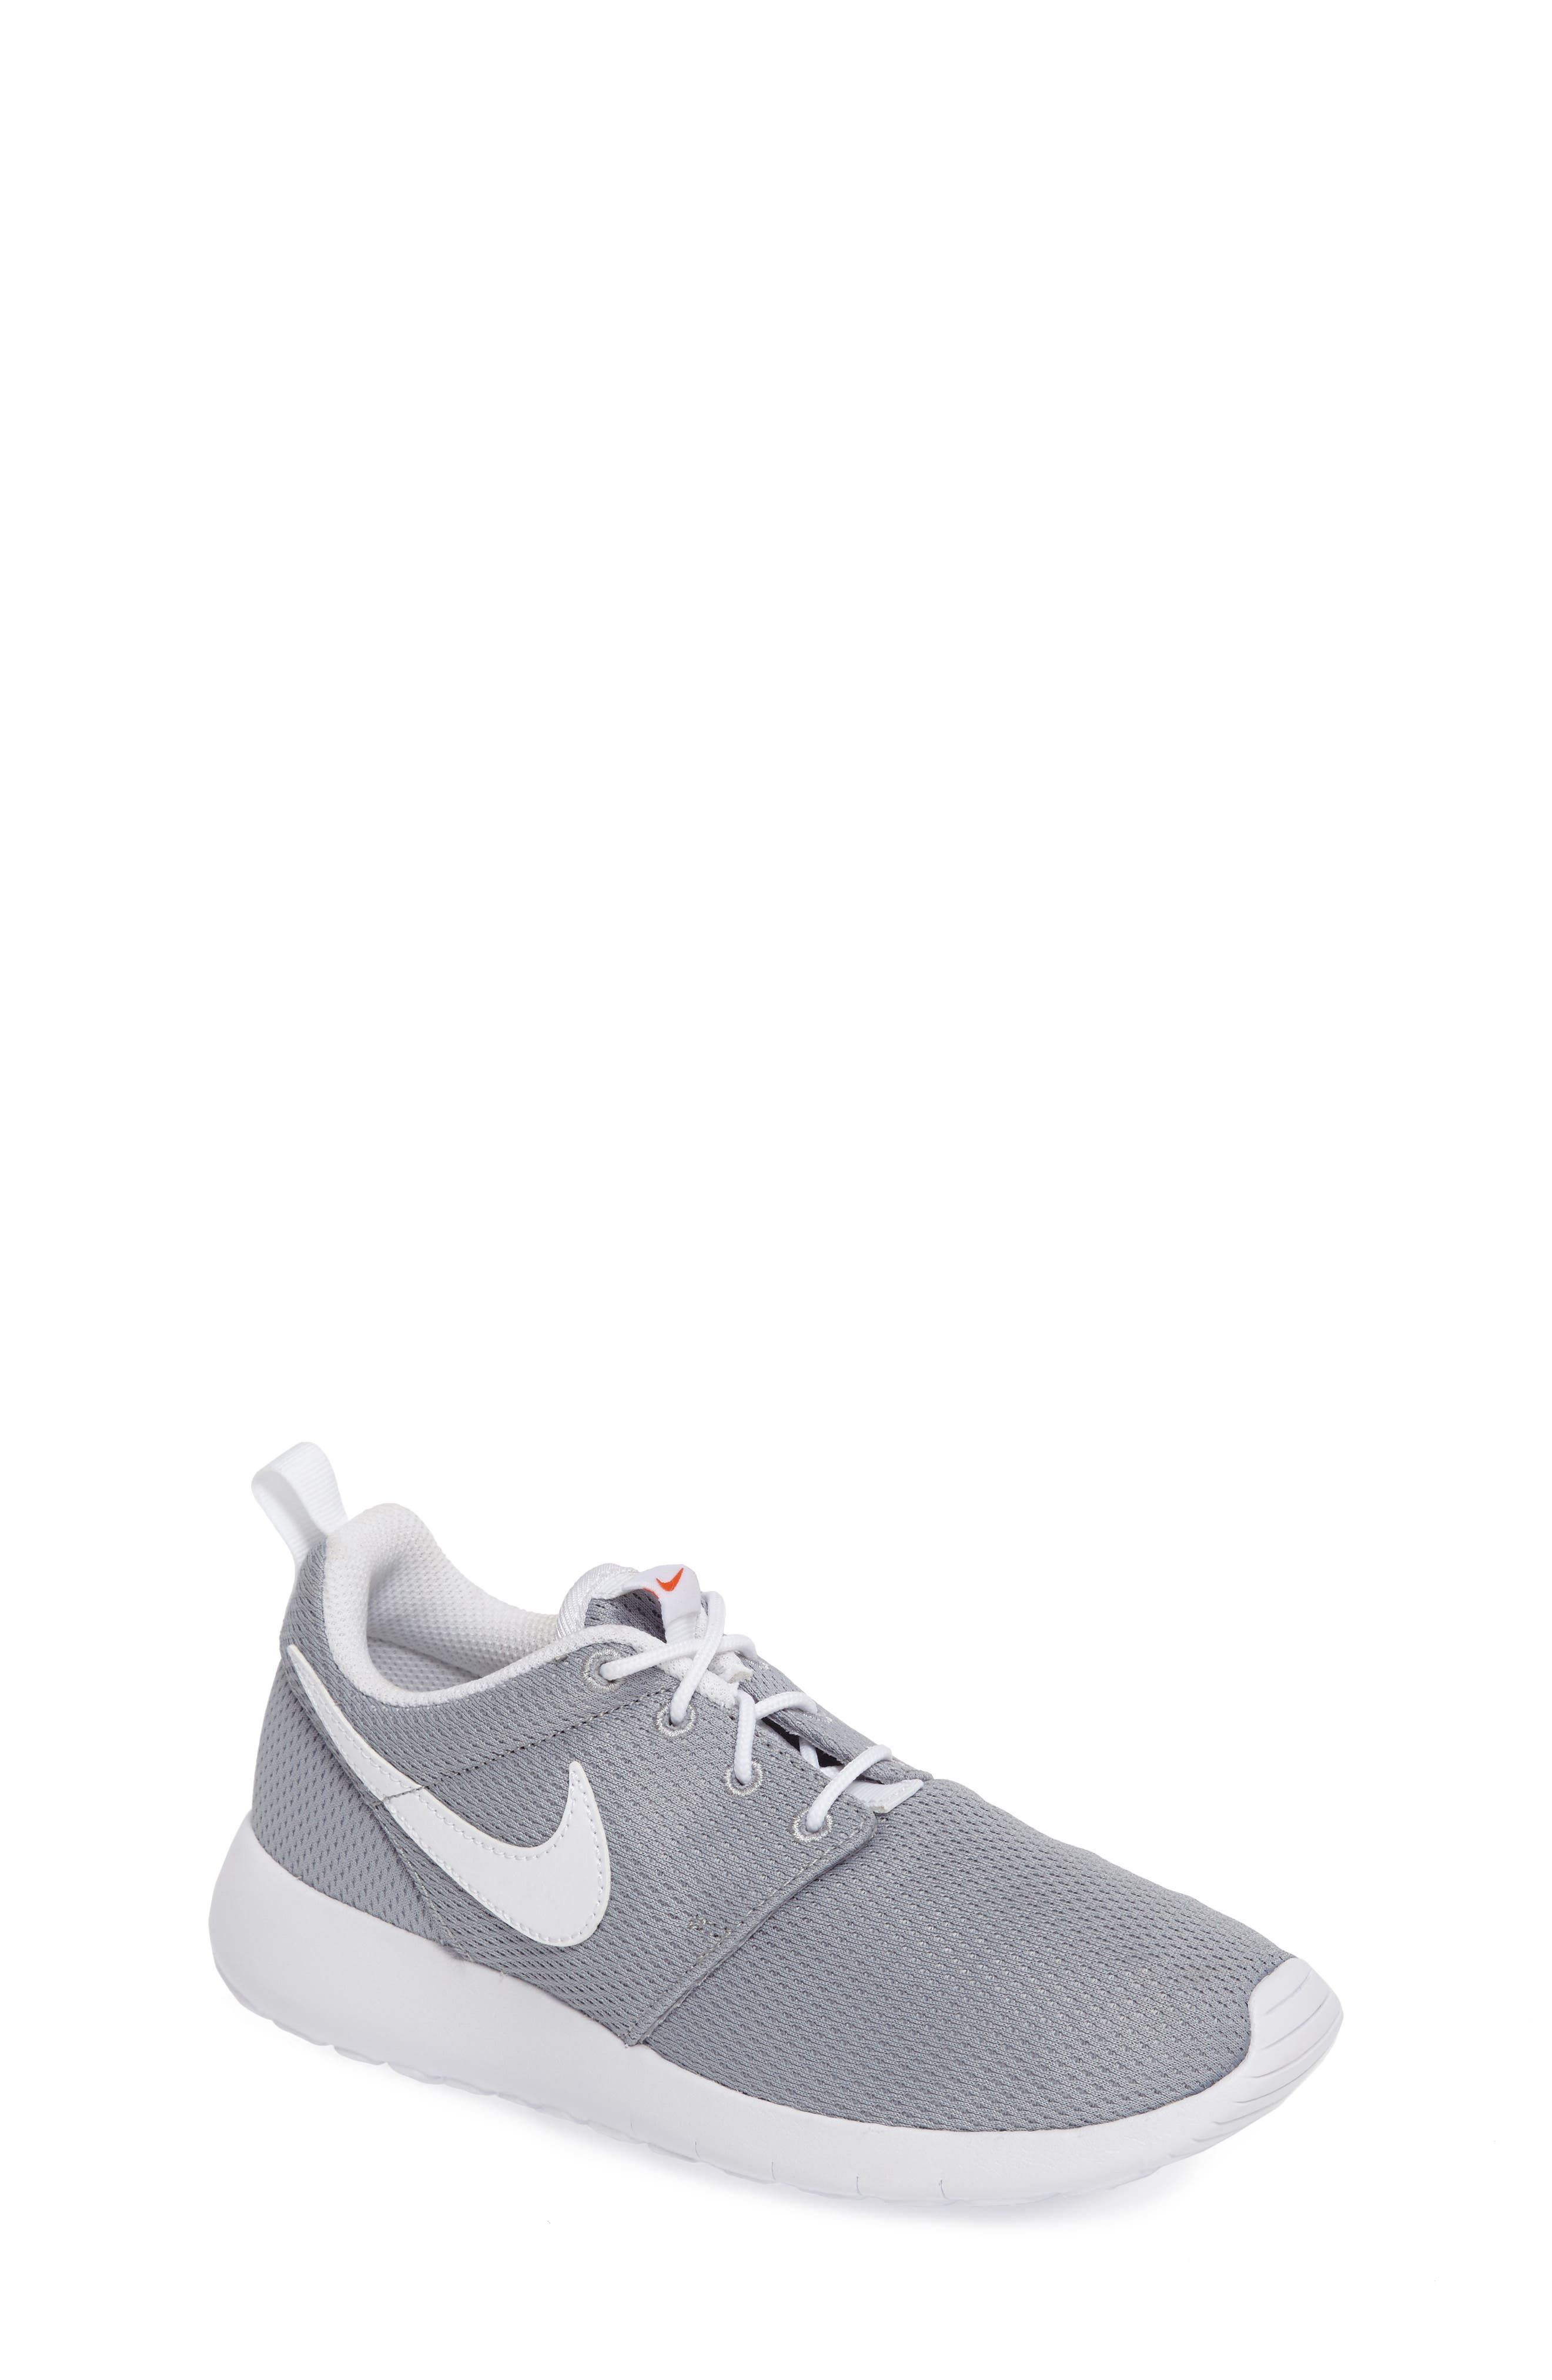 Main Image - Nike 'Roshe Run' Sneaker (Little Kid & Big Kid)